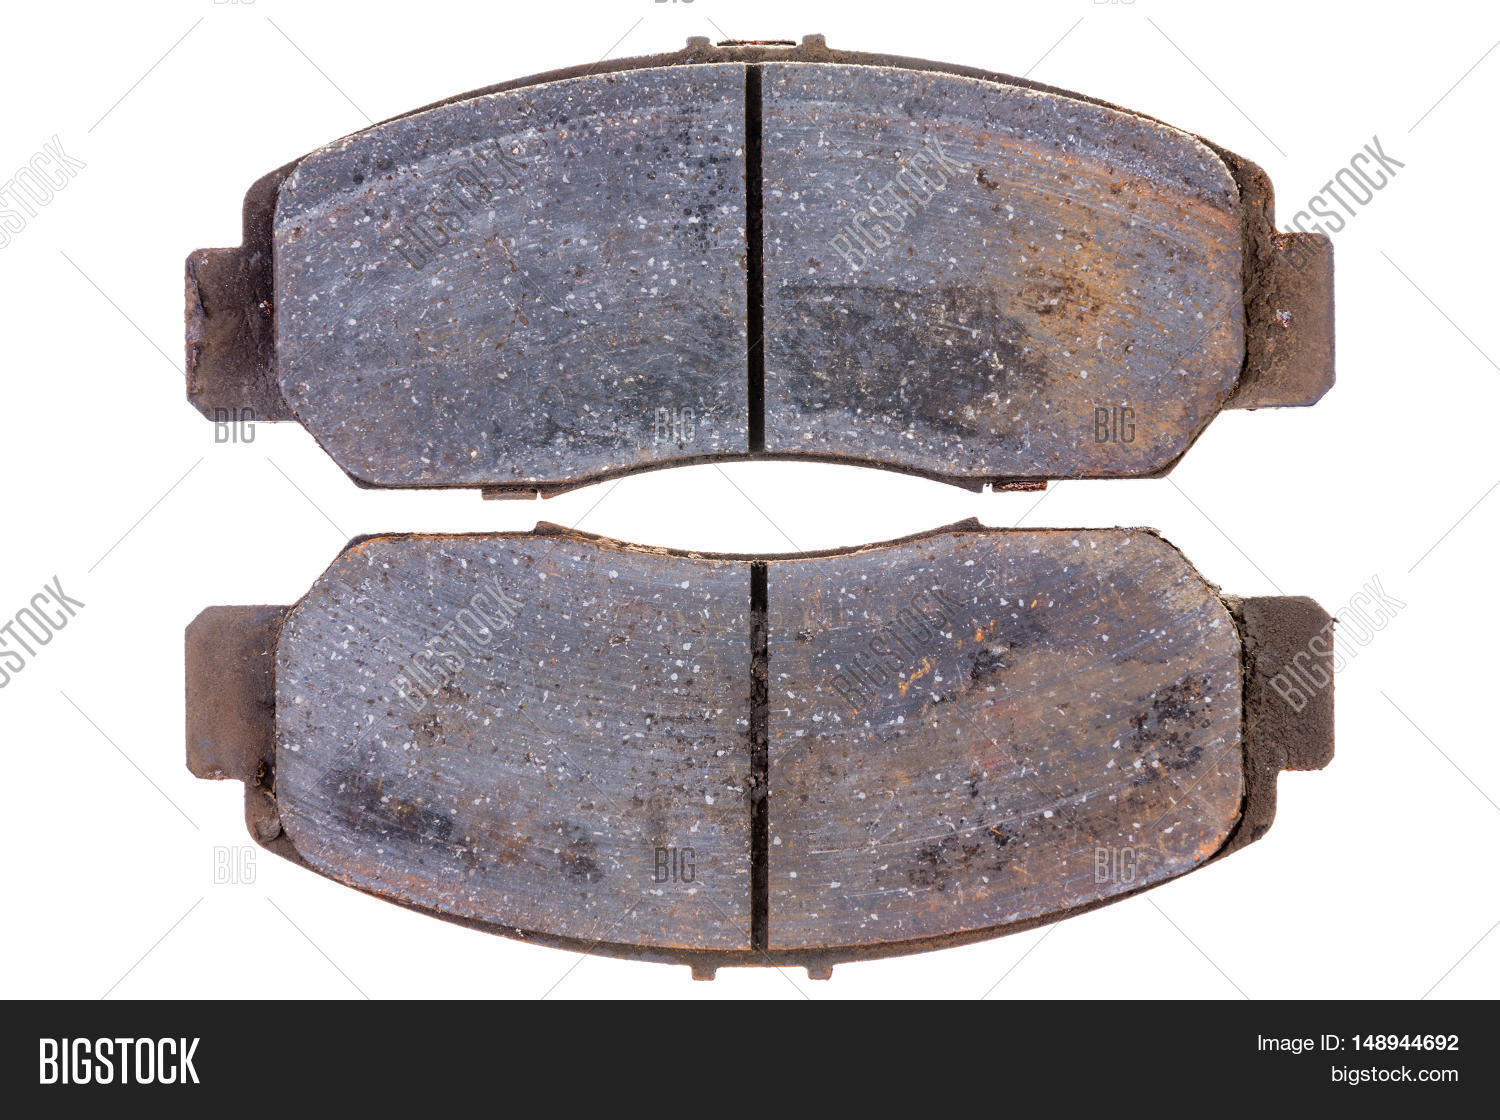 Set Old Worn Brake Pads Car Image & Photo | Bigstock